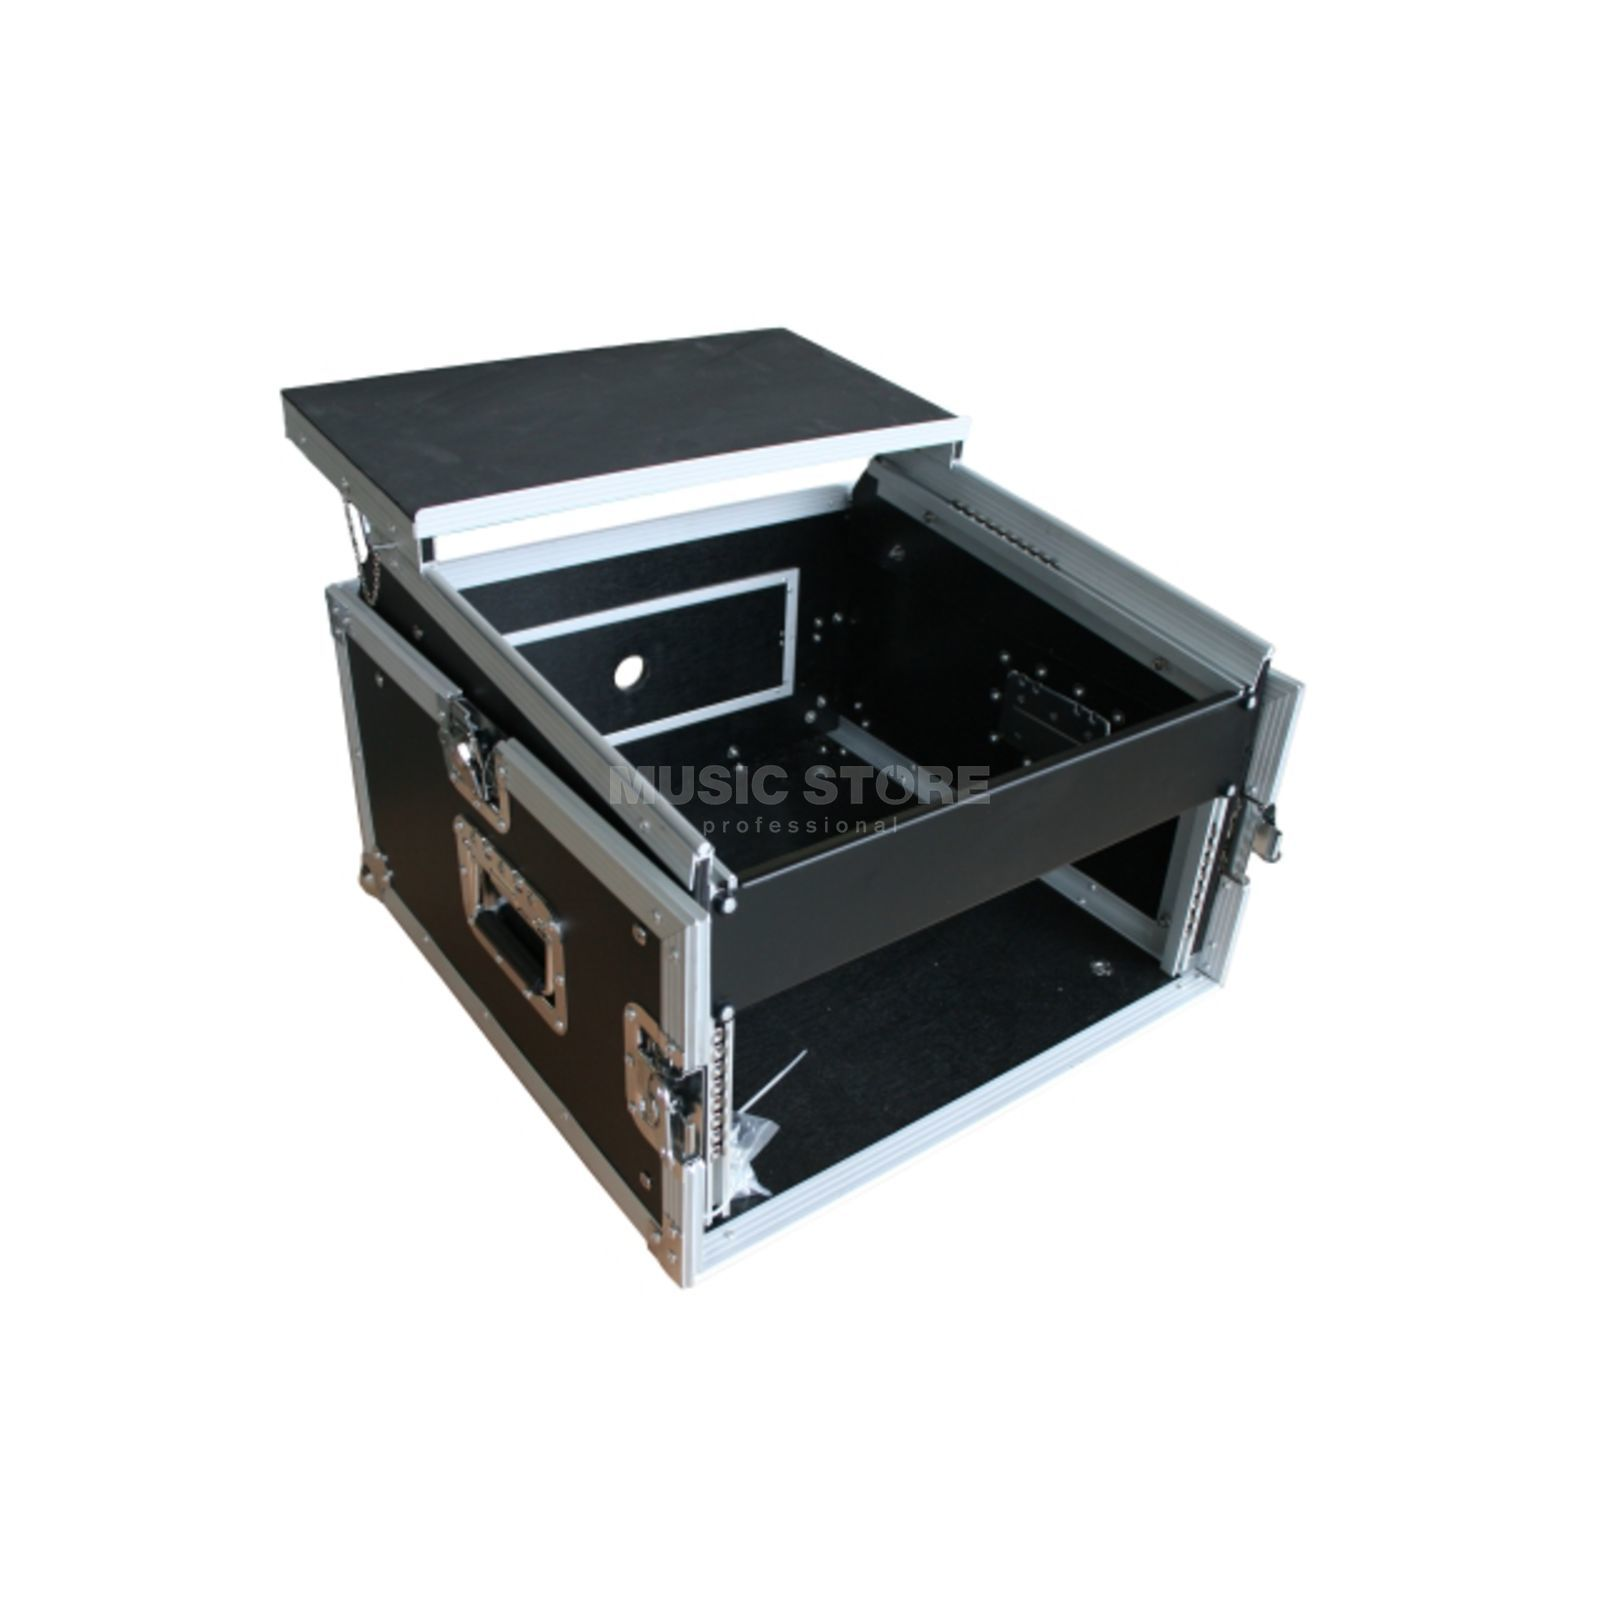 "MUSIC STORE Digital DJ Case 3, 19"" L-Rack 4HE/10HE + Laptop Shelf Produktbillede"